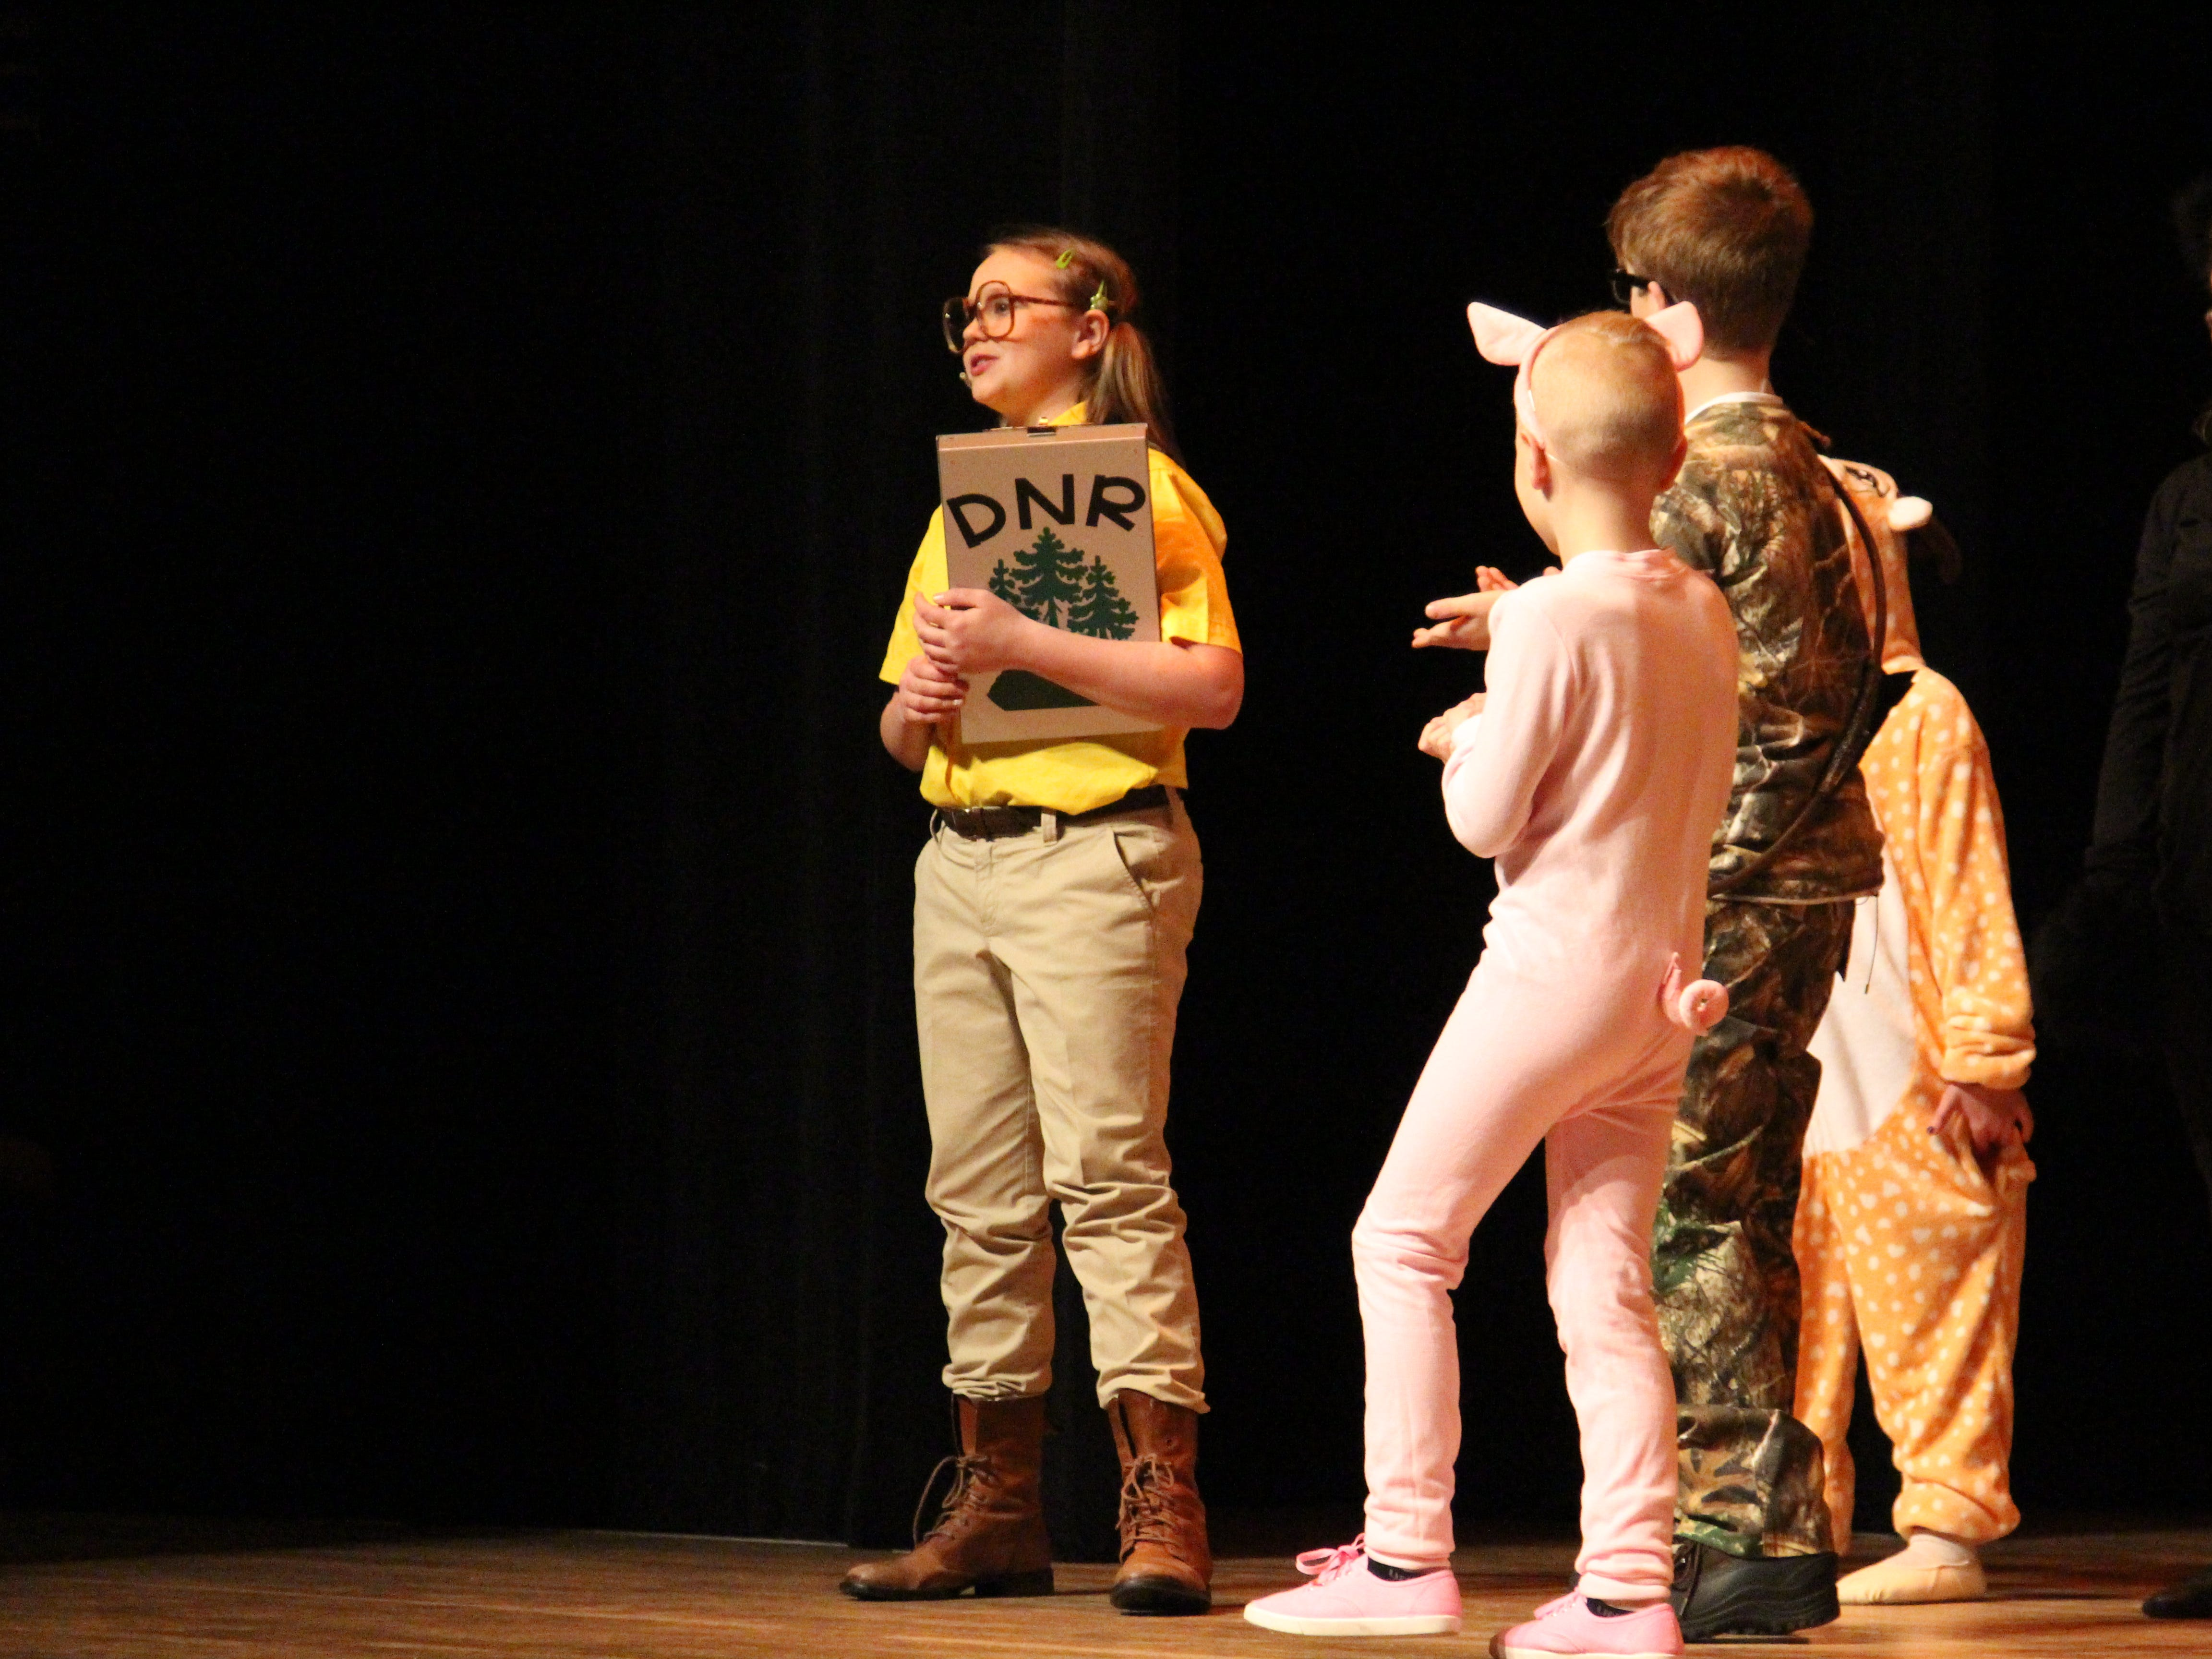 """In a moment of comedic relief, a Department of Natural Resources official stops the Huntsman from killing a pig in the forest, saying that the forest is protected land, in the Marion Palace Theatre's production of """"The Tale of Snow White."""" It plays at 7:30 p.m. Friday and Saturday, Feb. 8 and 9 and at  2 p.m. Sunday, Feb. 10."""